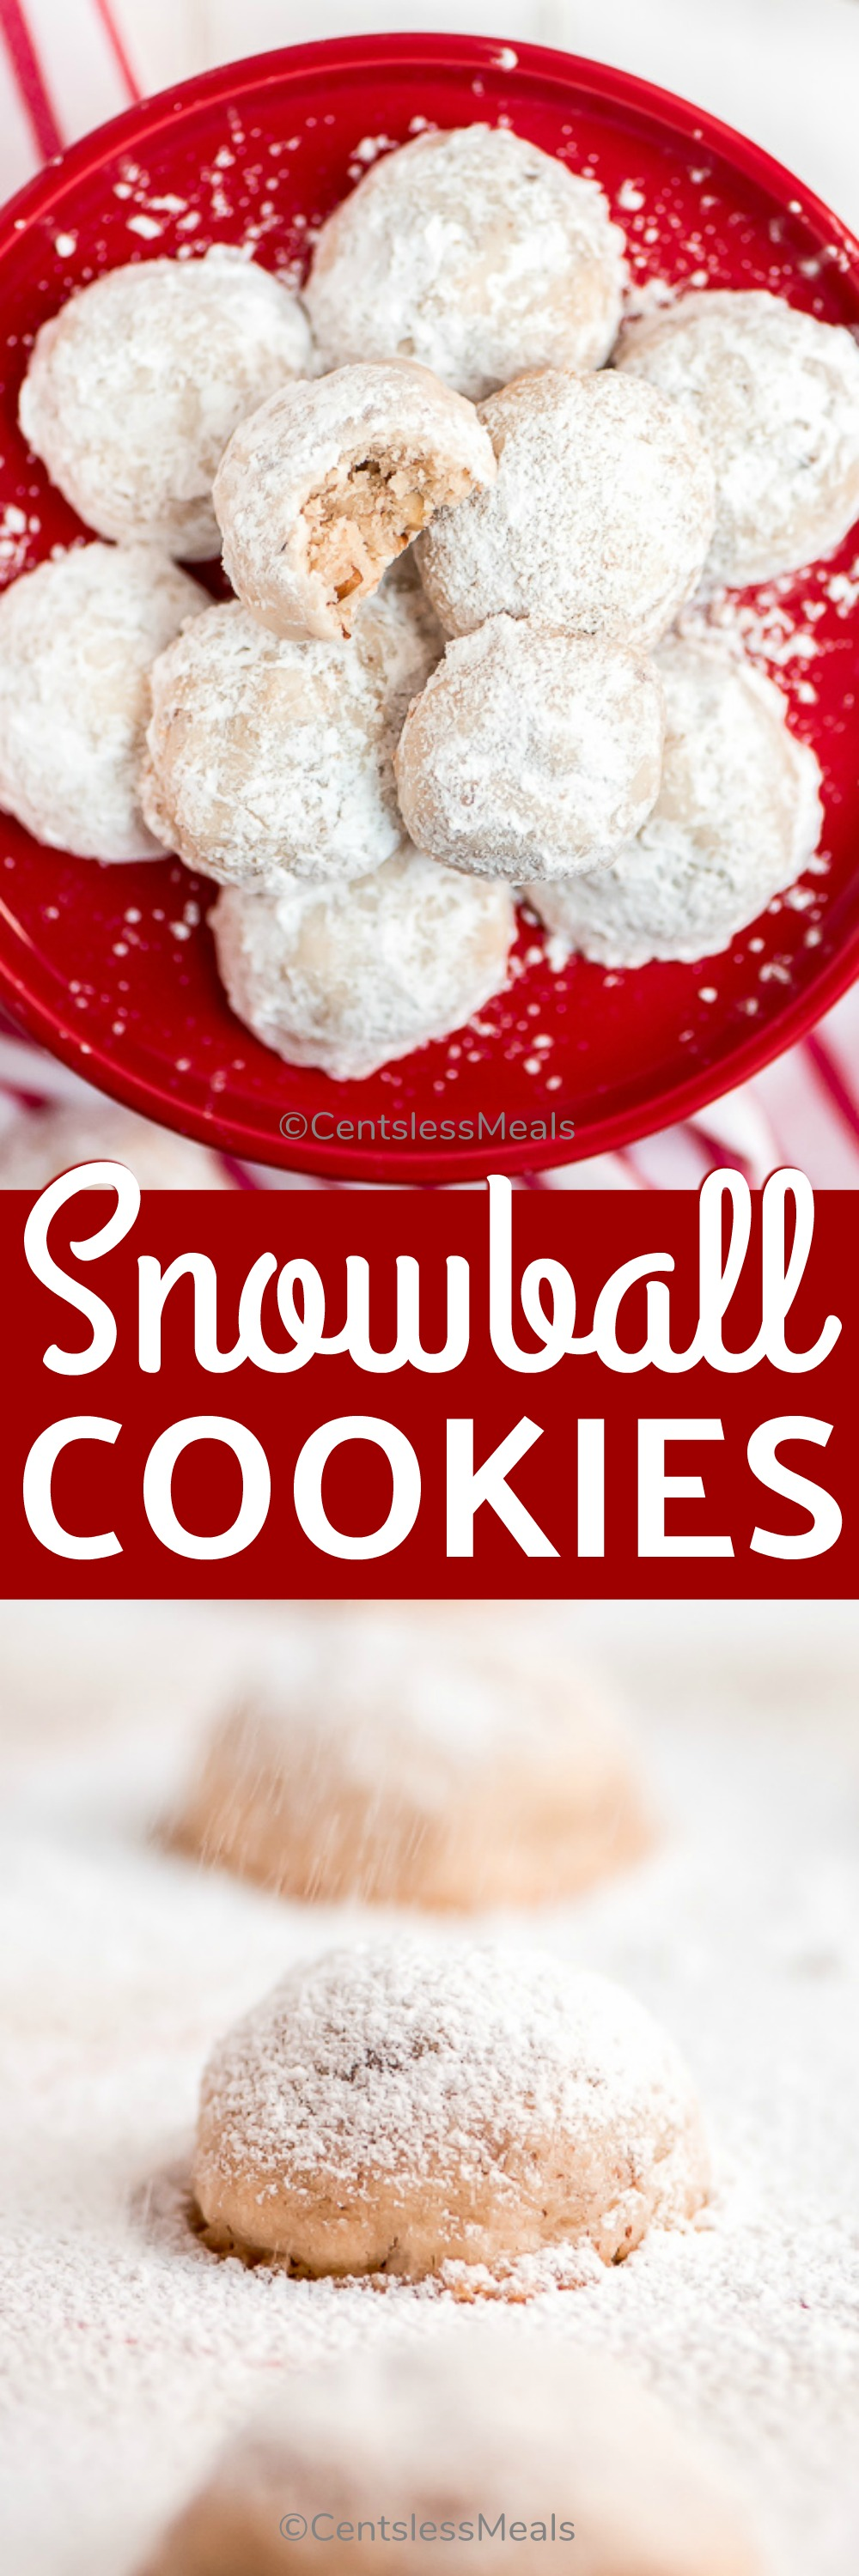 Snowball Cookies are the easiest festive winter cookie to make. These buttery, melt-in-your-mouth cookies are made with six ingredients and are ready to eat in just 30 minutes. #centslessmeals #easyrecipe #holidaycookies #holidayrecipes #cookies #cookierecipe #withpecans #festivecookie #festiverecipe